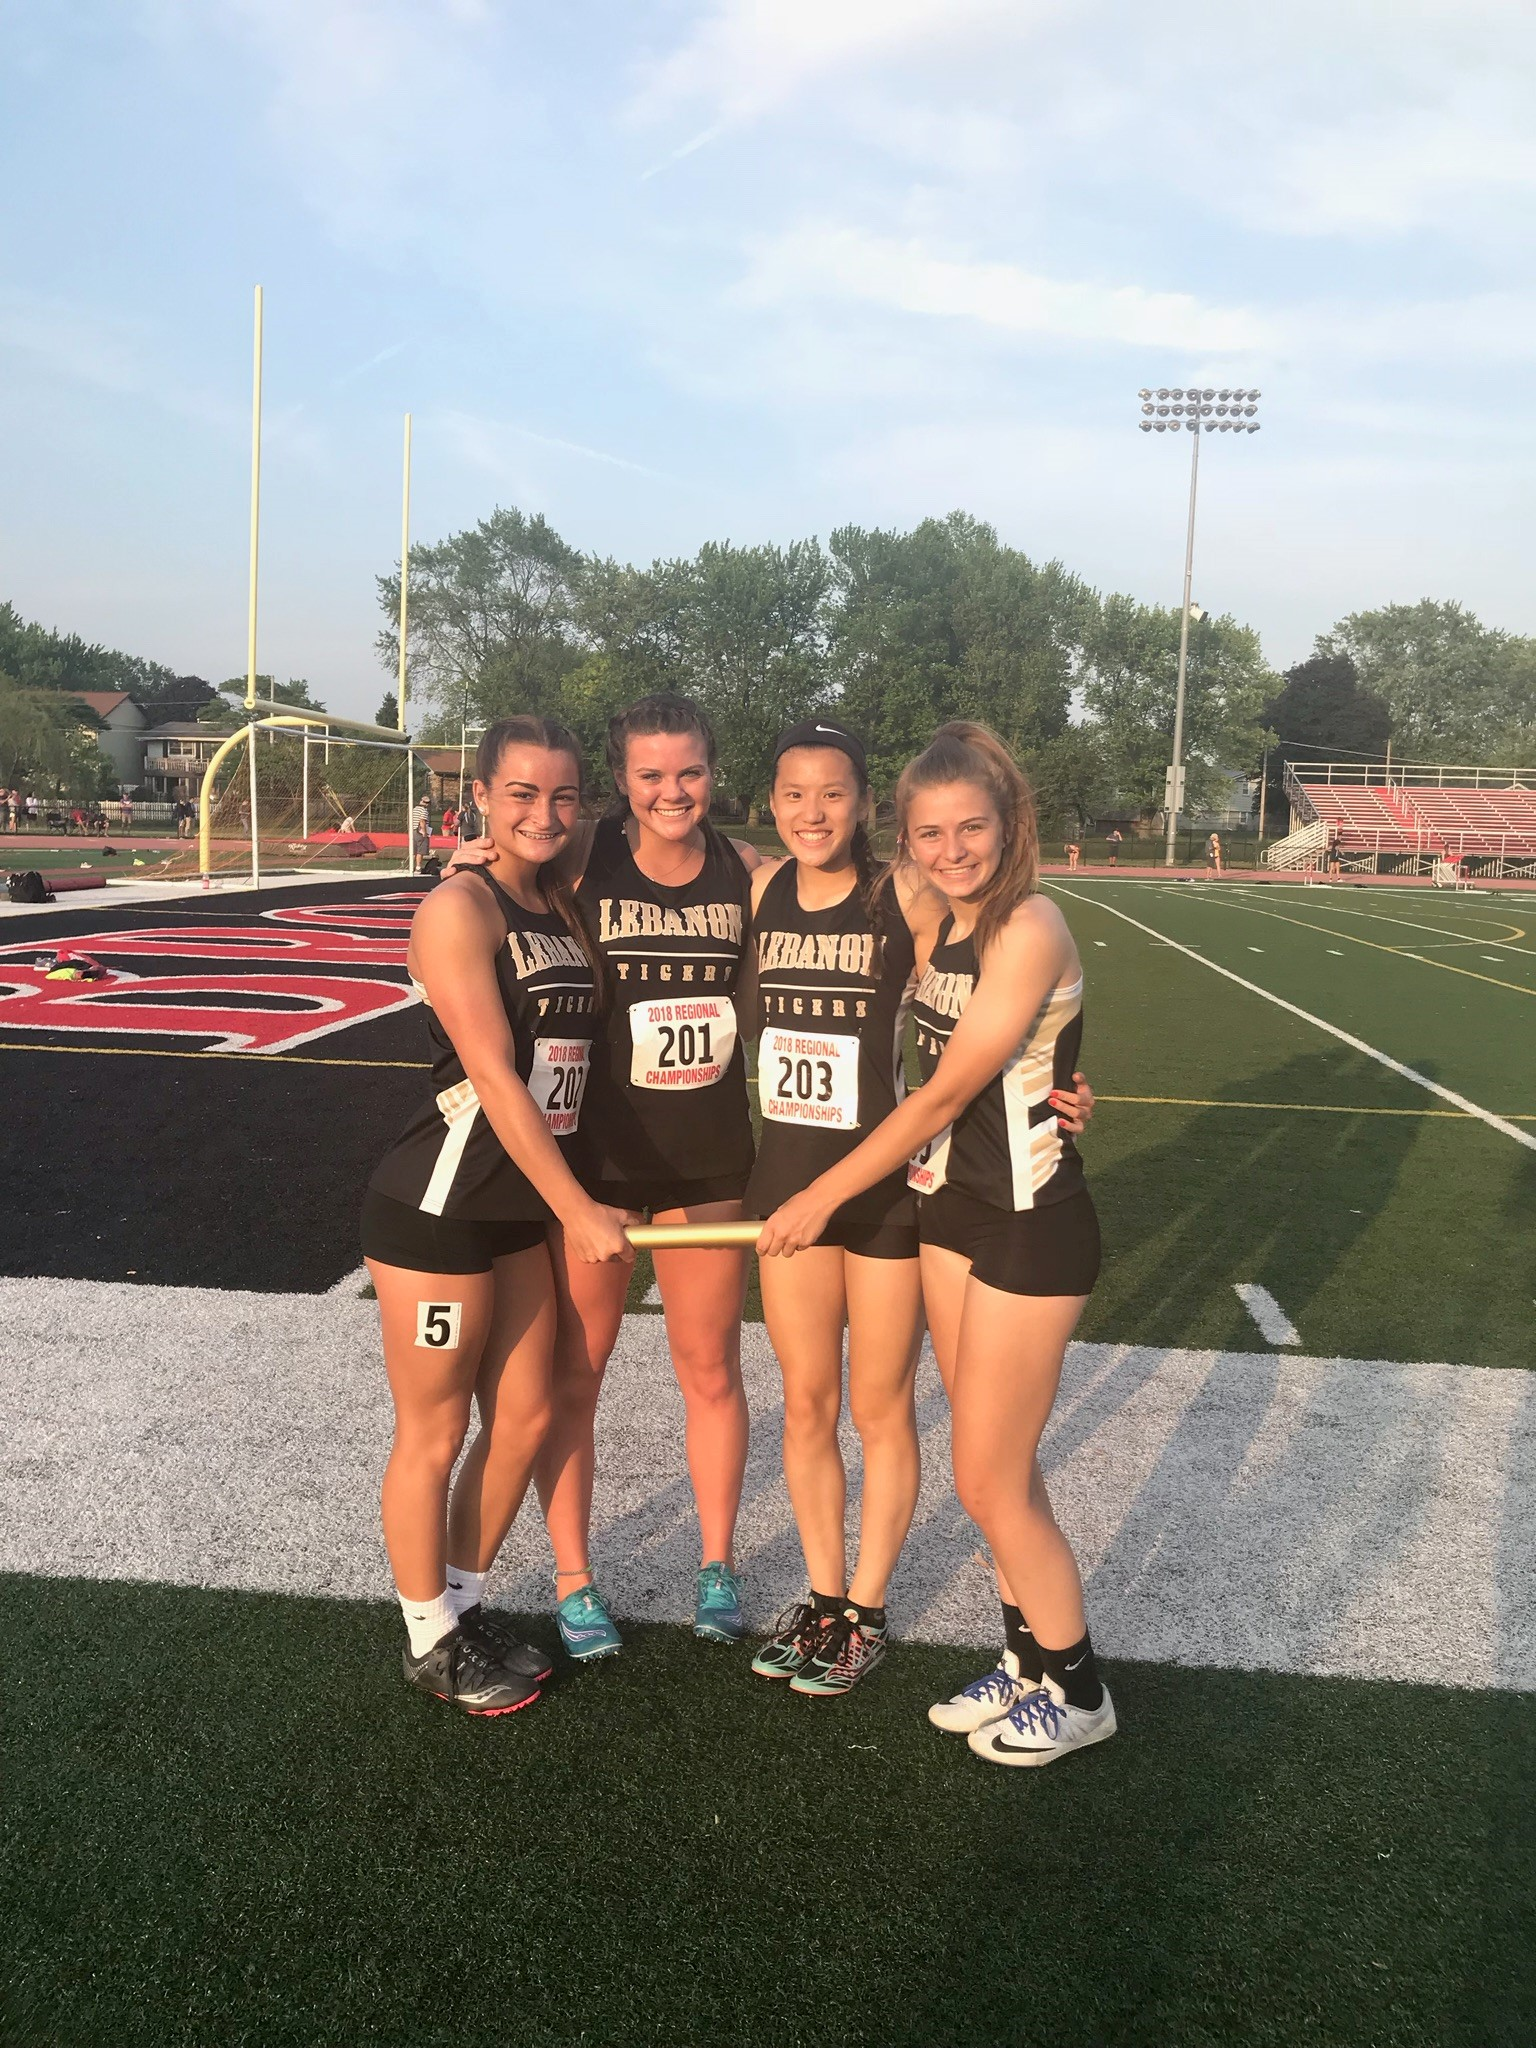 Congratulations to Girls Regional 4×100 Relay Team: Funk, Stogsdill, Trepcos, and Montgomery